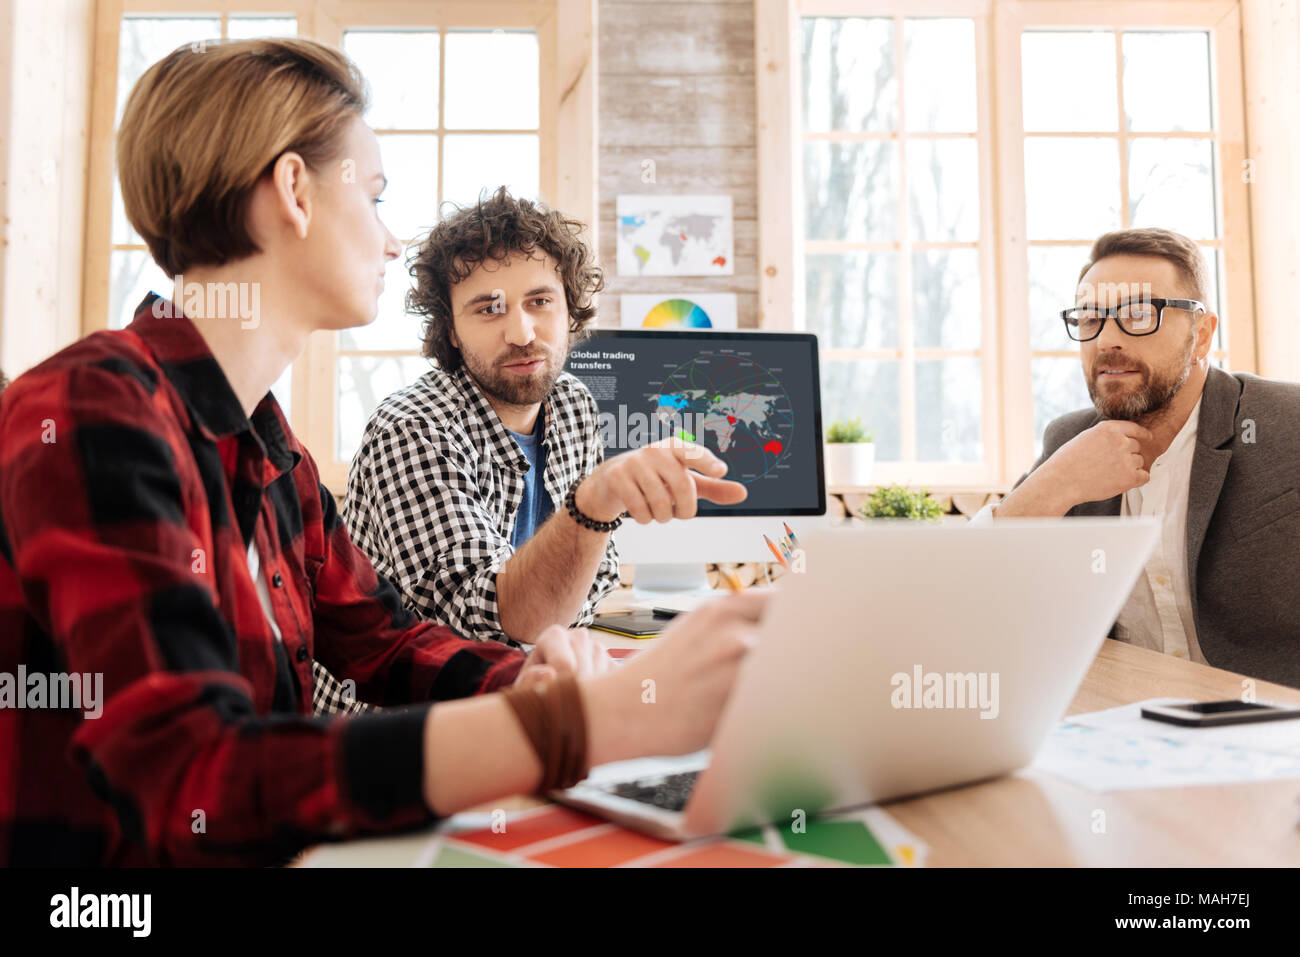 Determined man discussing work his co-workers - Stock Image